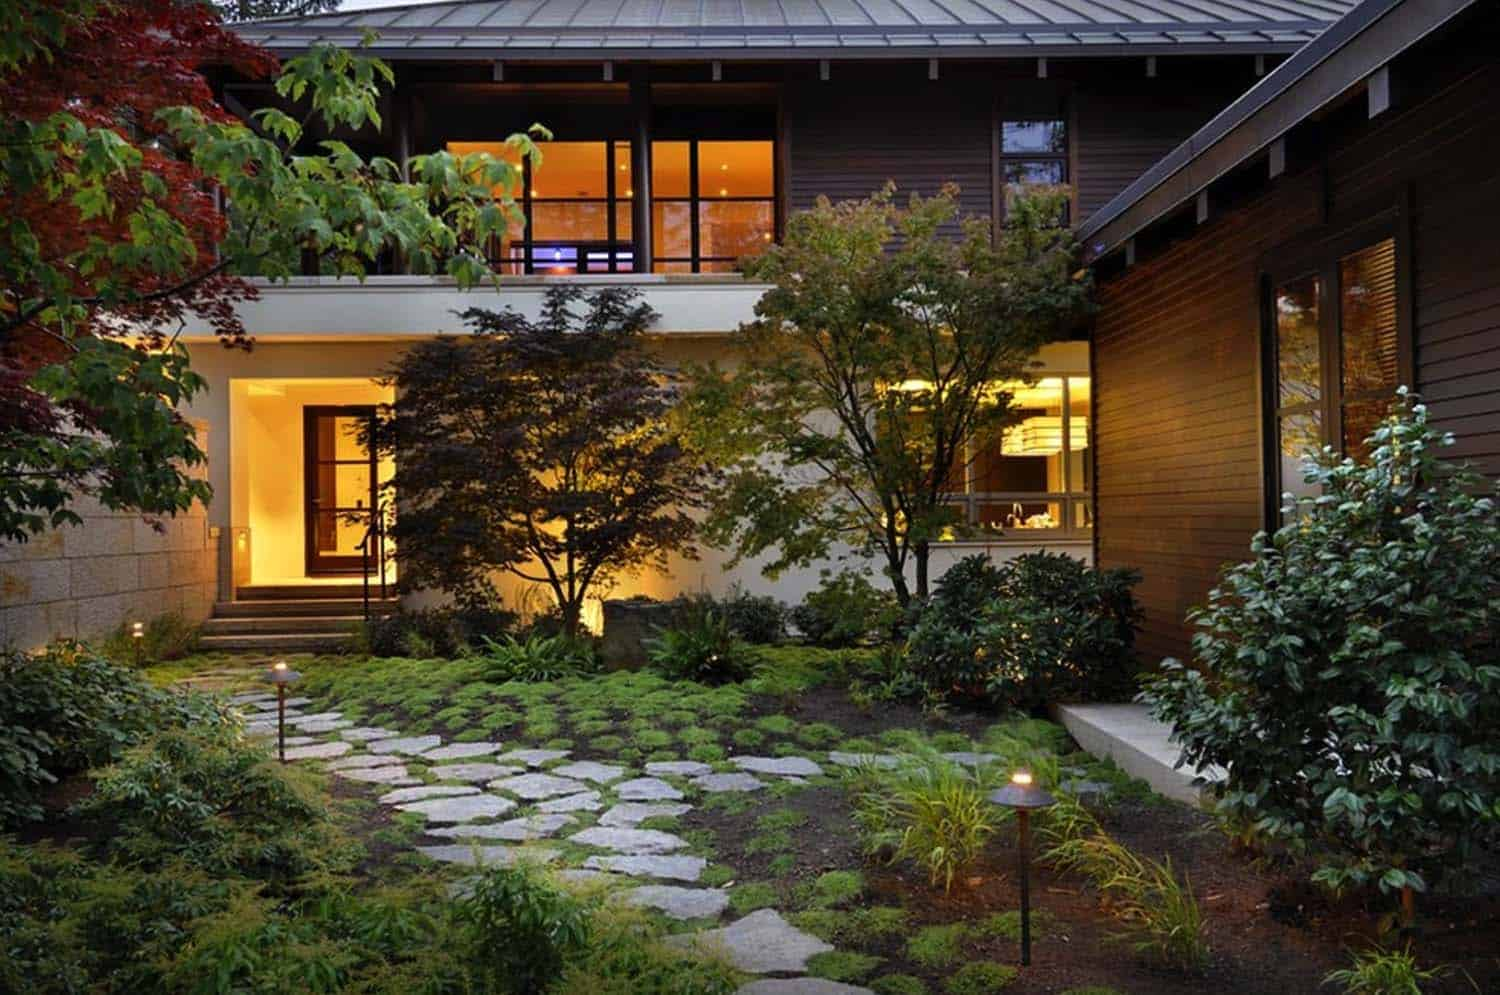 vancouver-island-residence-mckinley-burkart-architects-01-1-kindesign